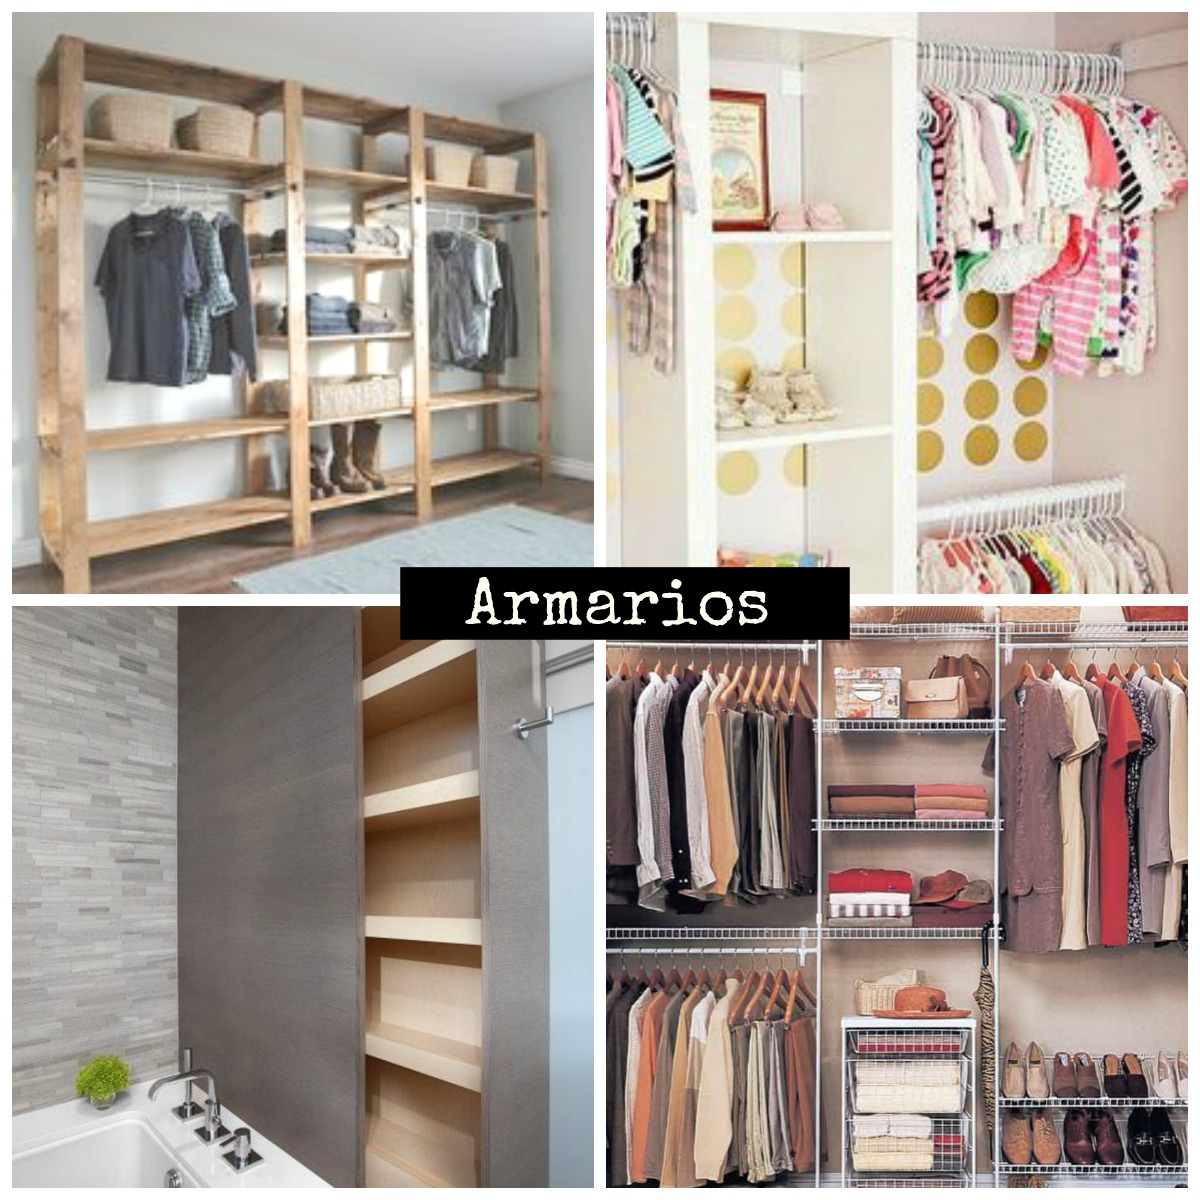 Ideas para estanterias finest ideas creativas y - Armarios infantiles originales ...